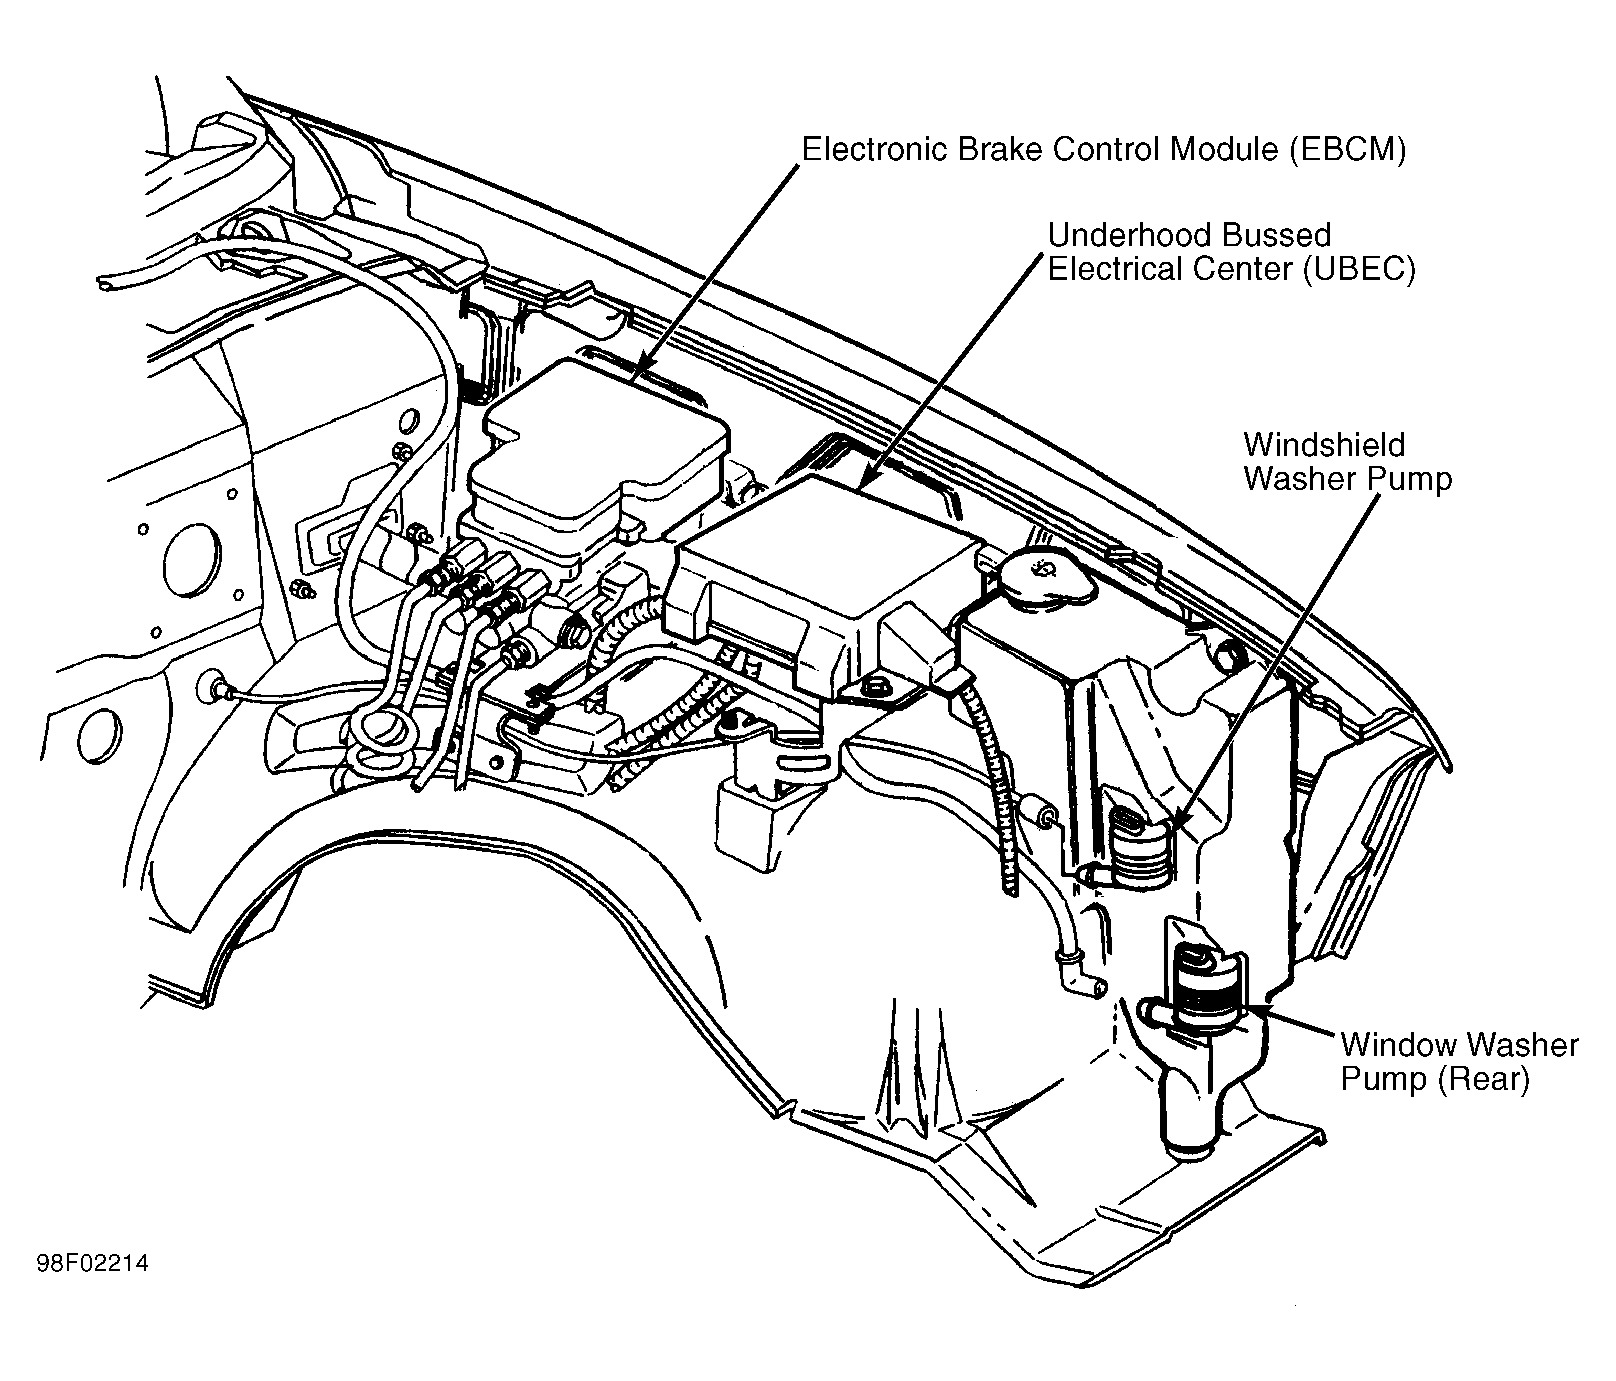 1994 gmc jimmy wiring diagram Images Gallery